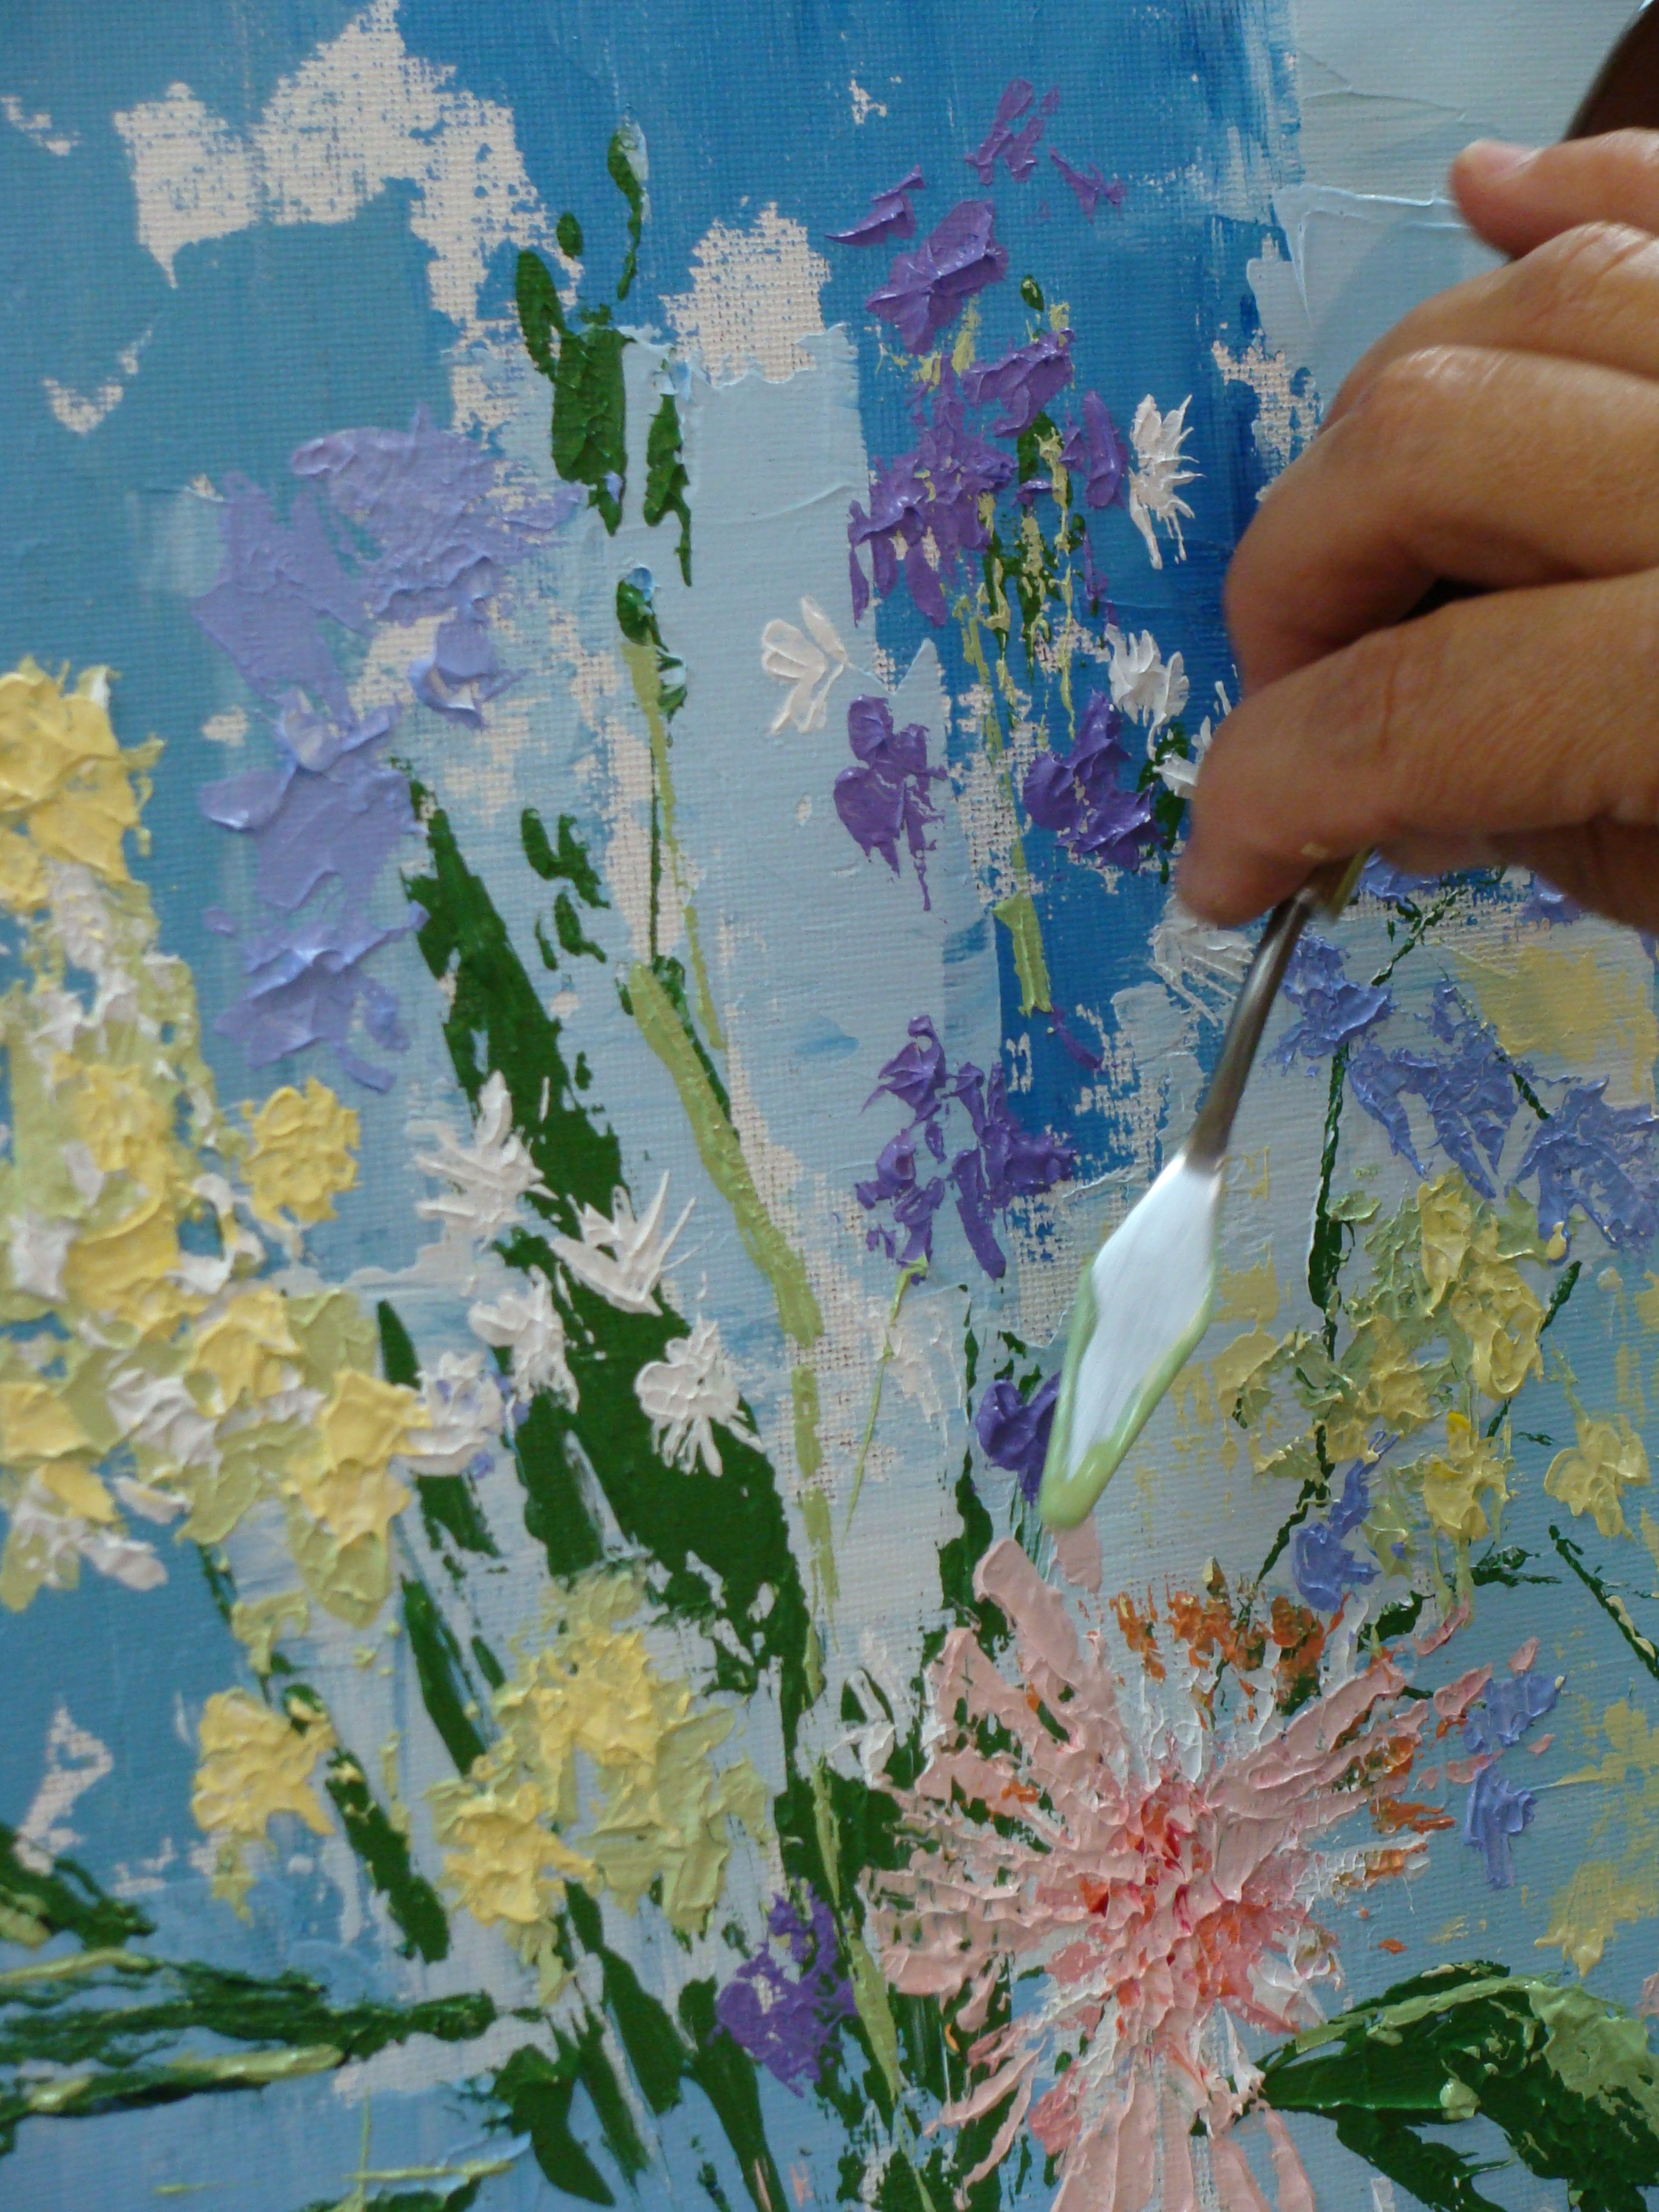 Tisha wood using a palette knife to paint in acrylics for Palette knife painting acrylic